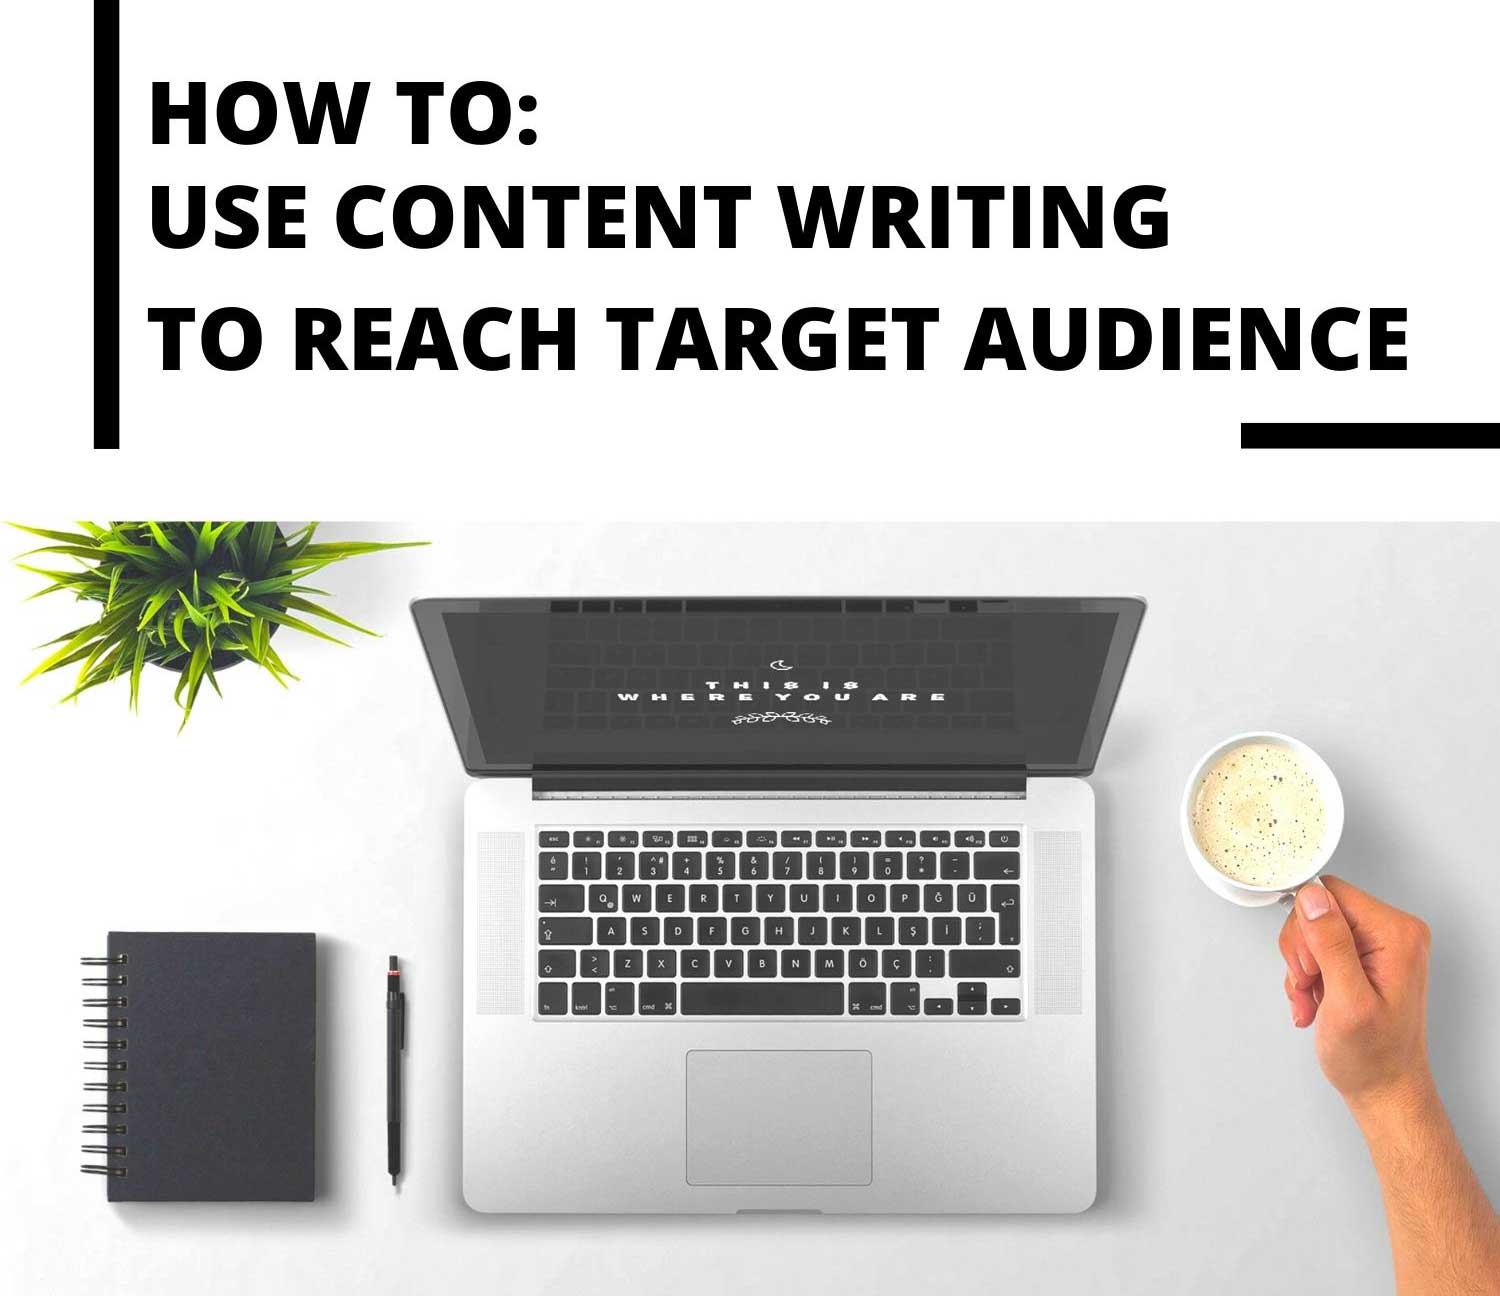 USING CONTENT WRITING TO REACH TARGET AUDIENCE